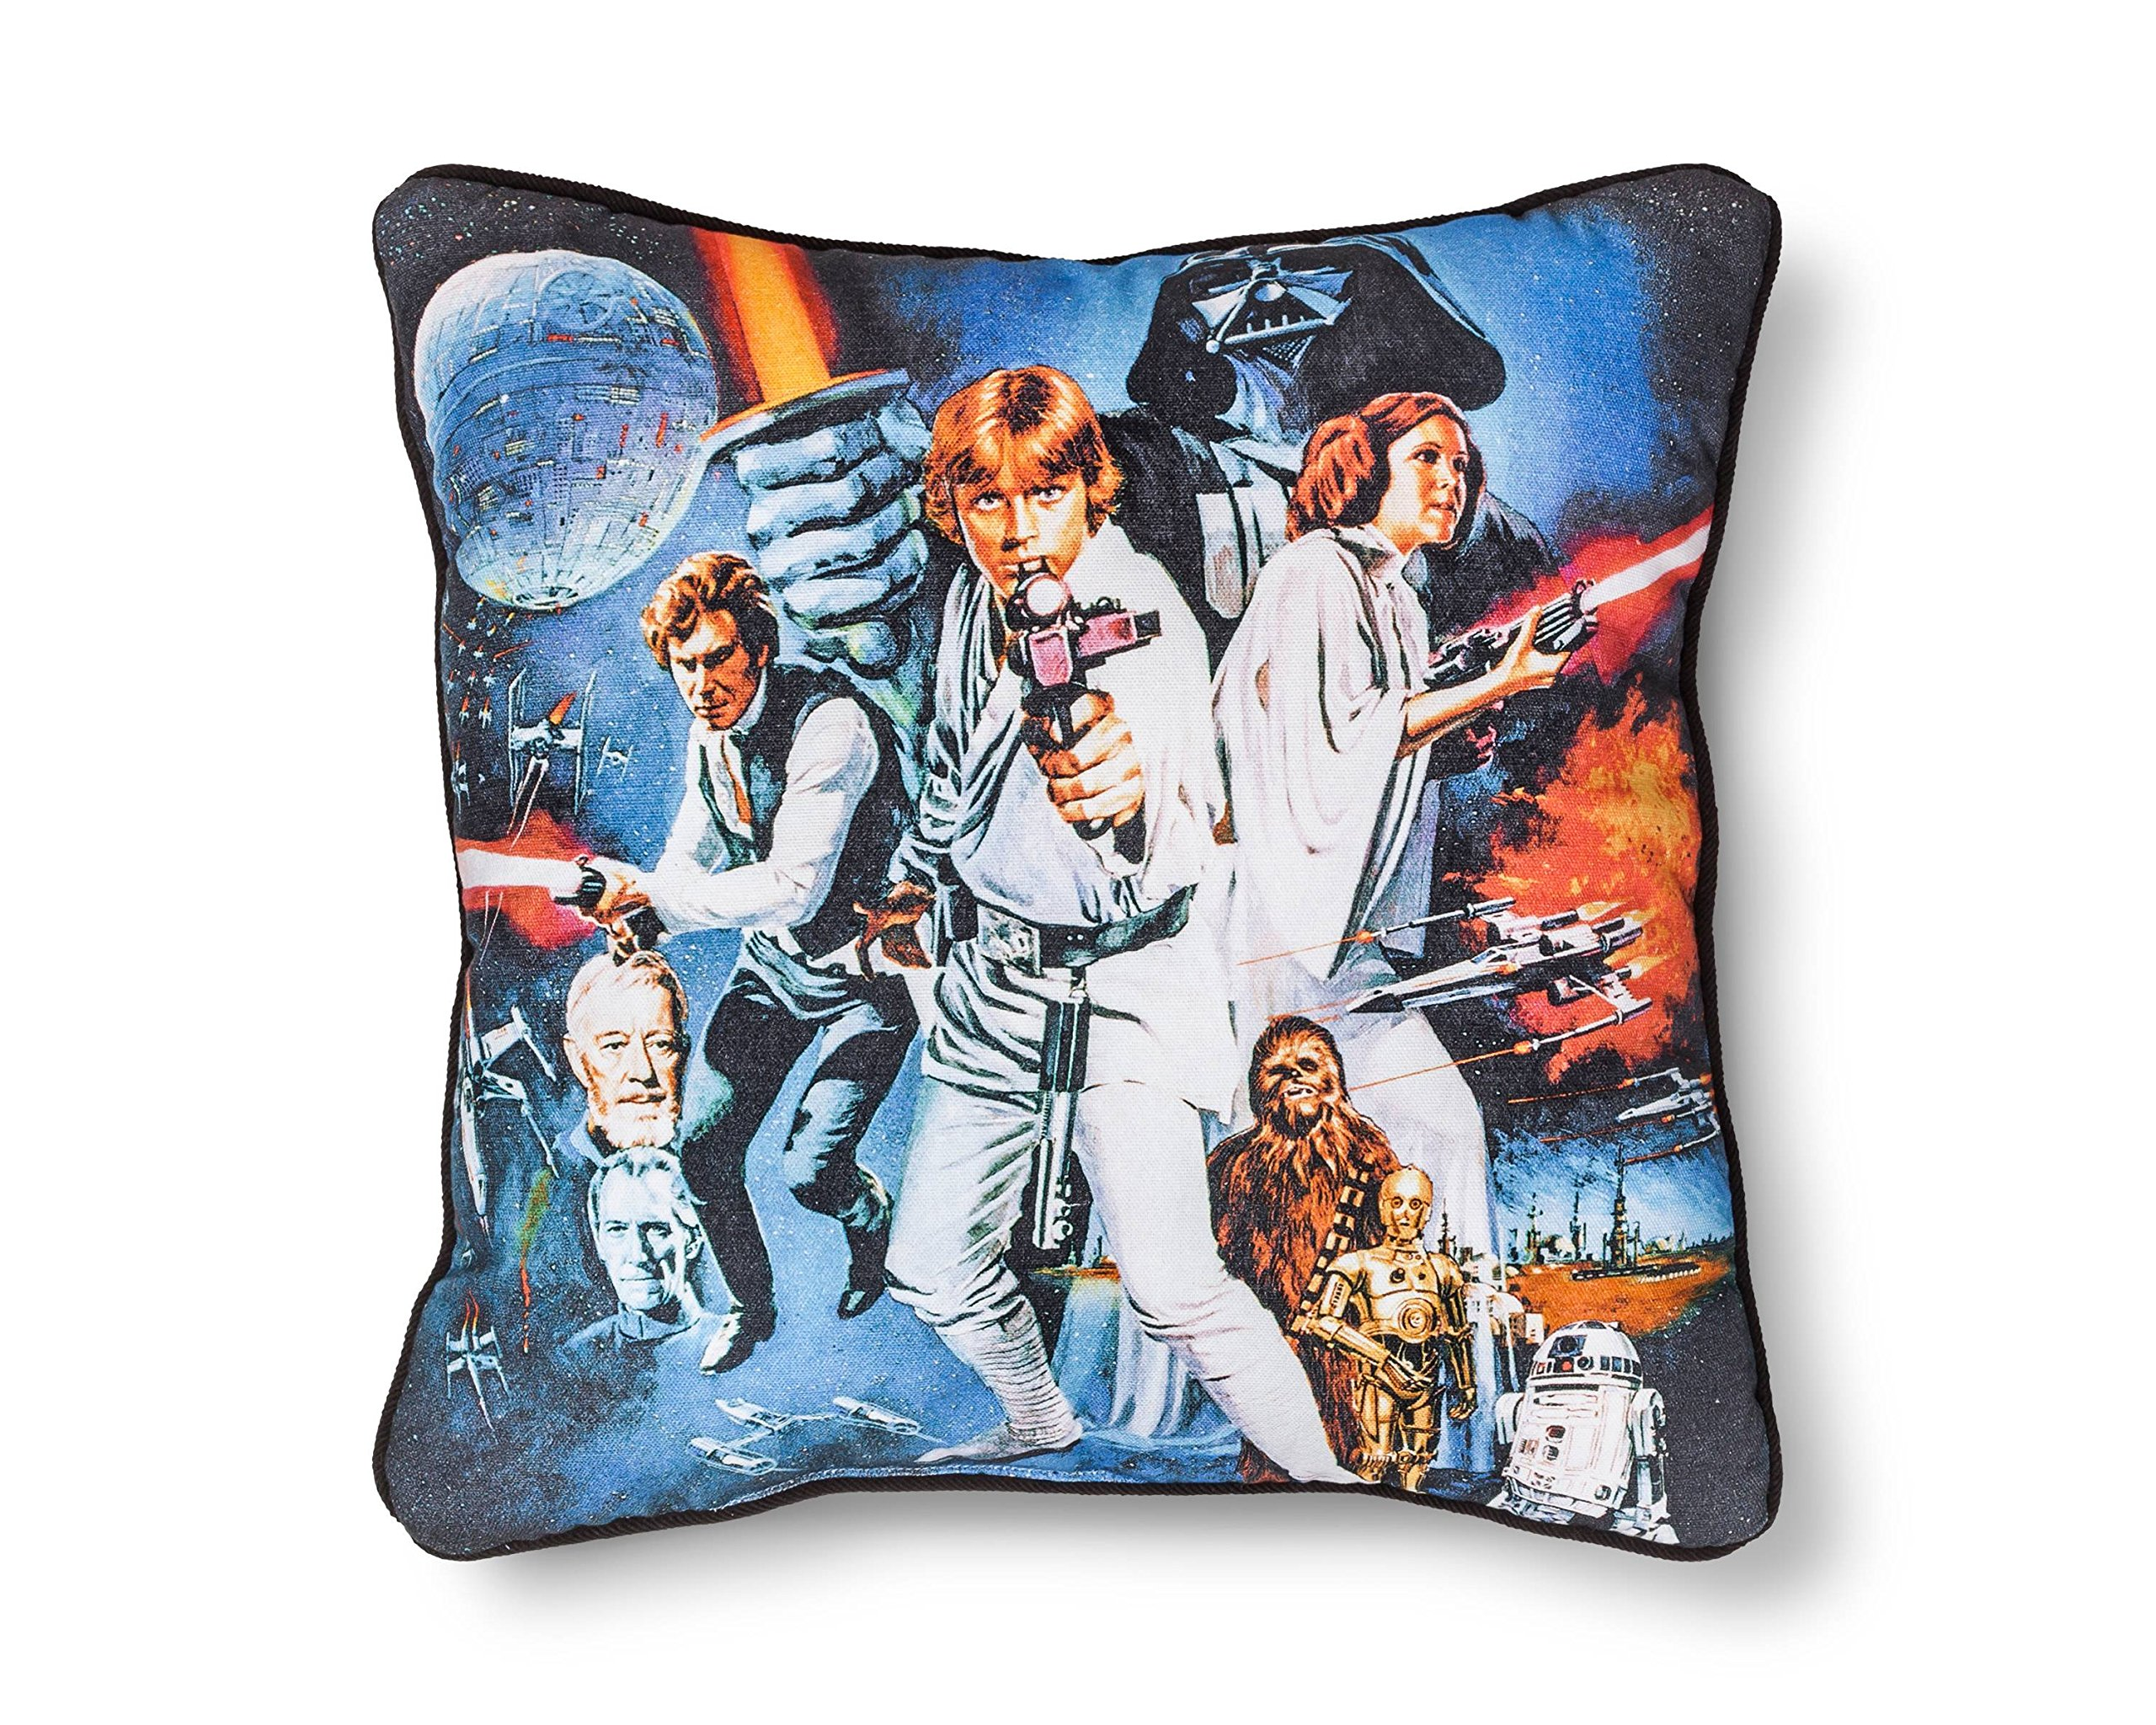 Star Wars Cast Blue Throw Pillow (15x15)